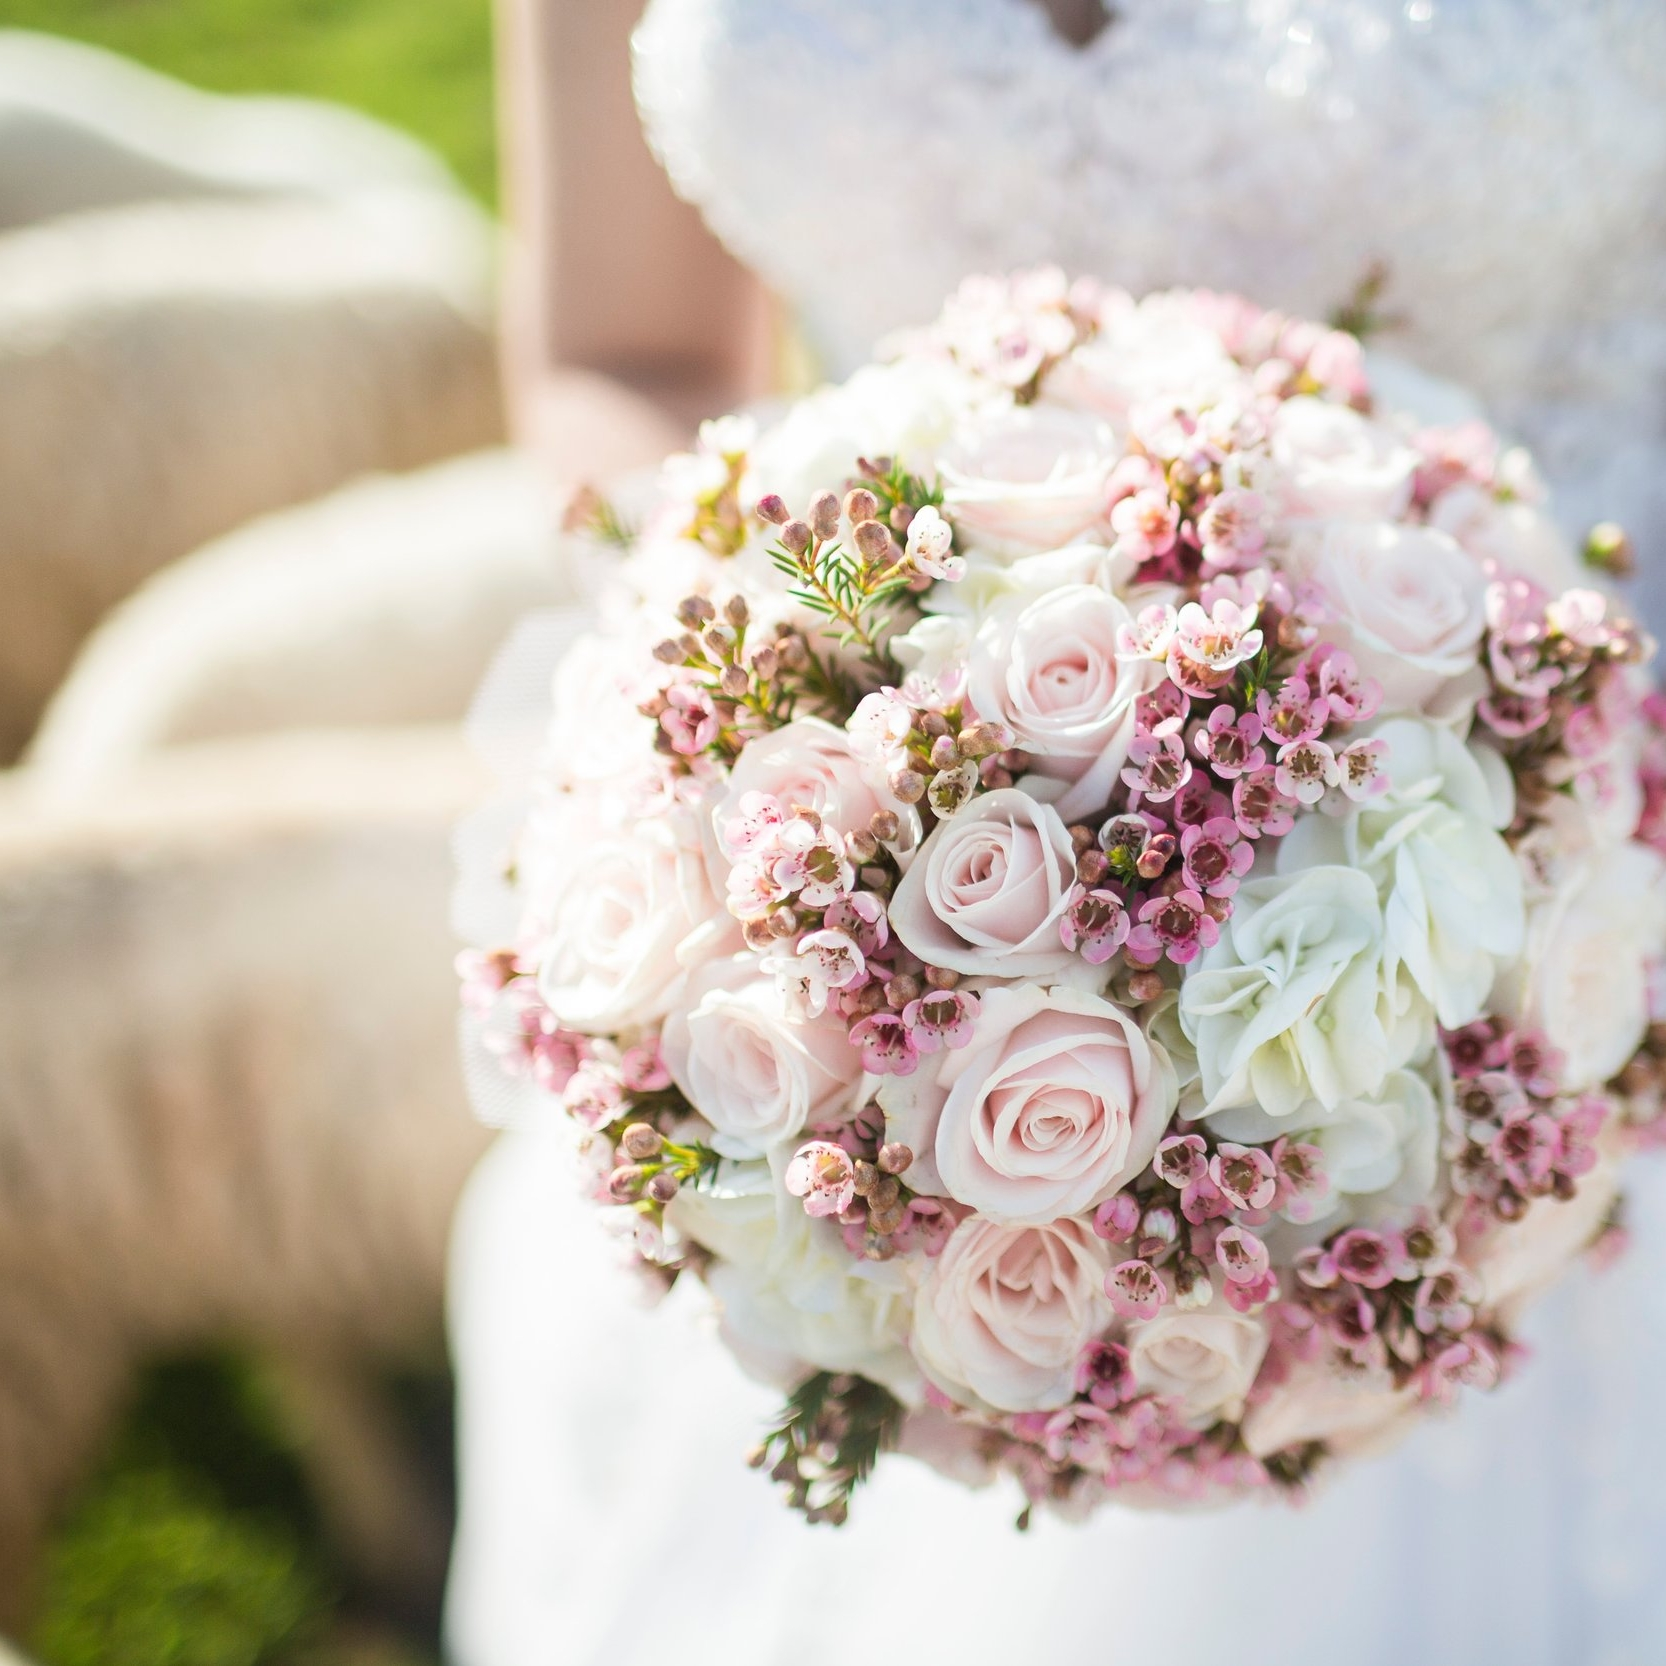 Farm Weddings - Let us help you make your wedding day one of the most memorable events in your life.